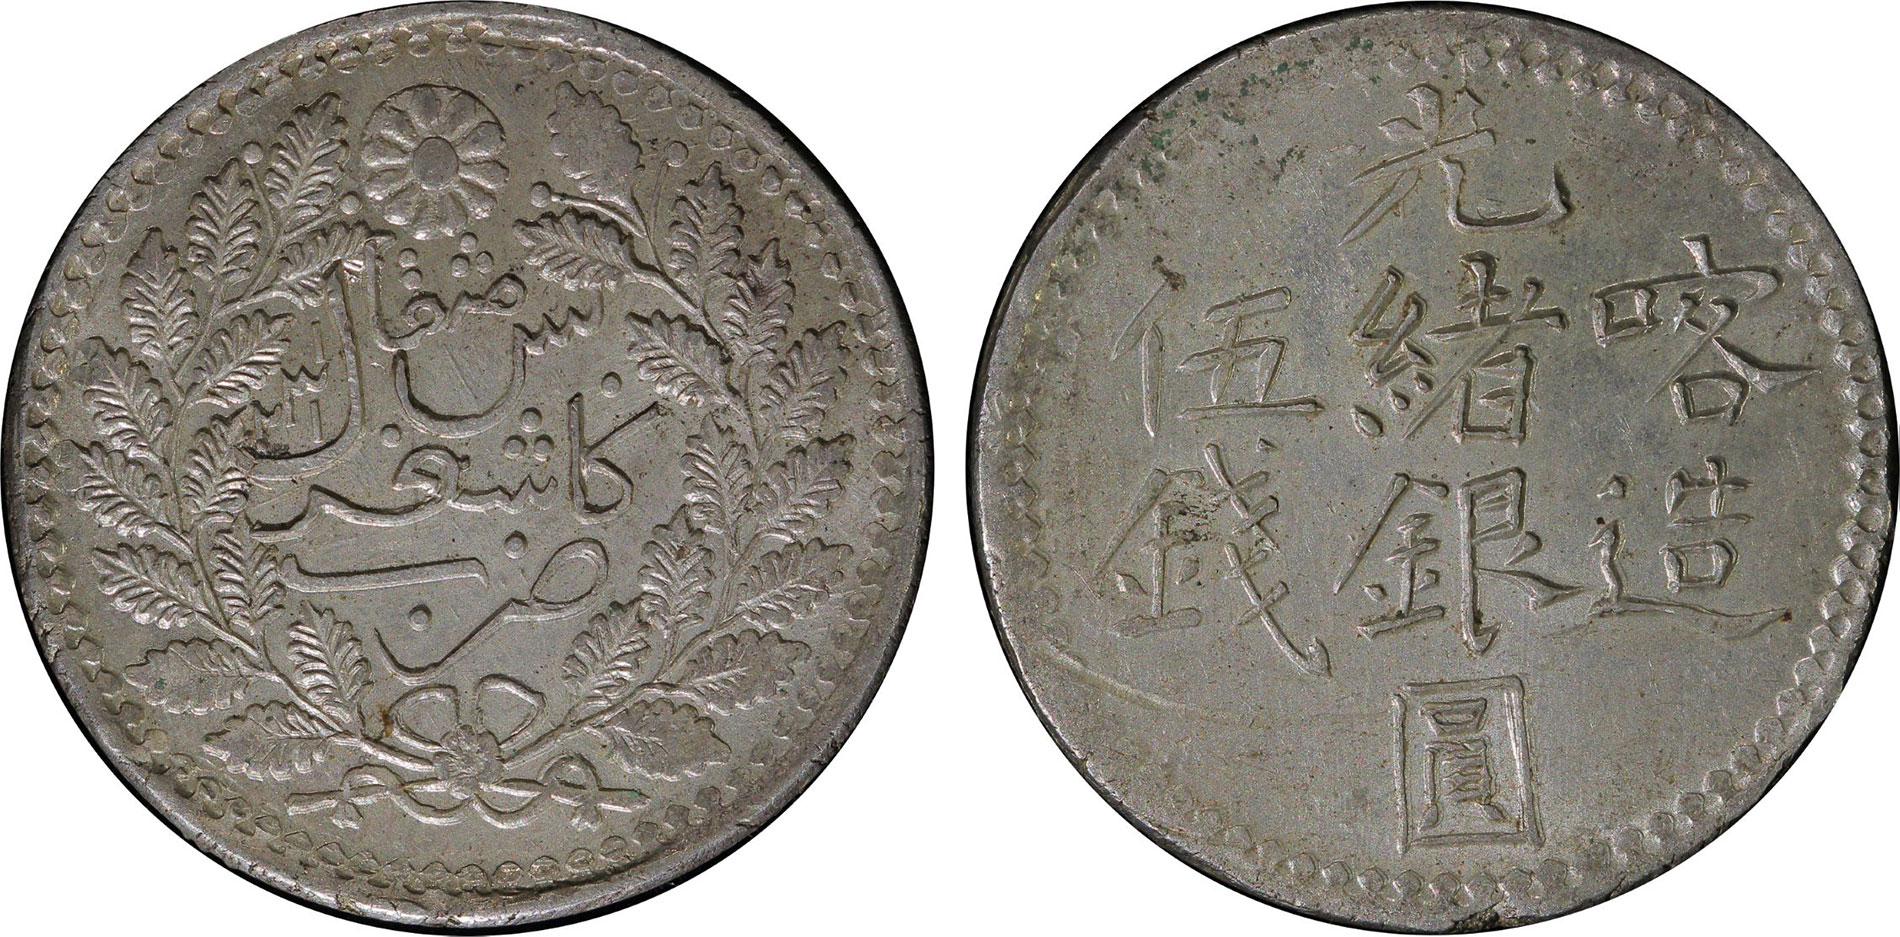 AH1321 (1903) 5 Misc LM-721 Y-19a.1 China-Sinkiang PCGS MS62. Images courtesy PCGS